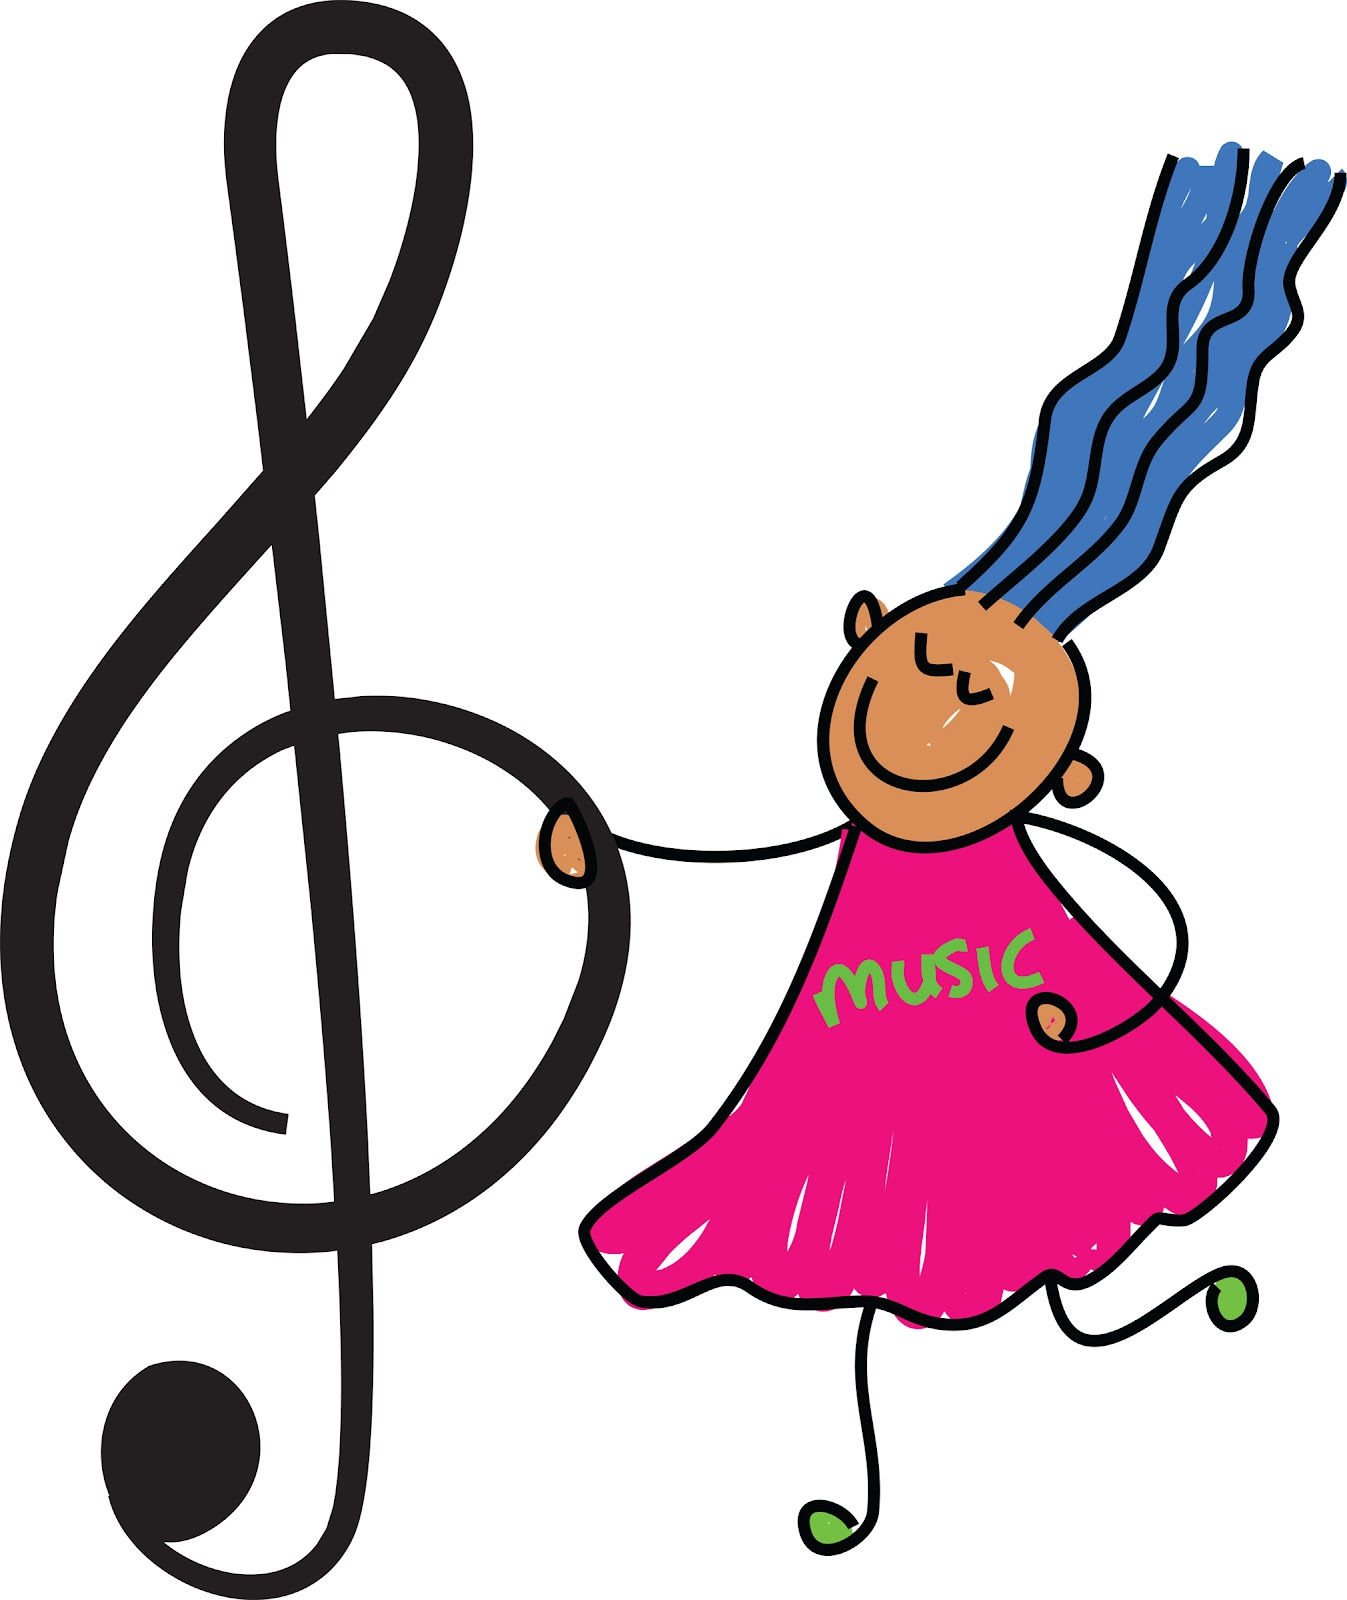 clipart images music - photo #23